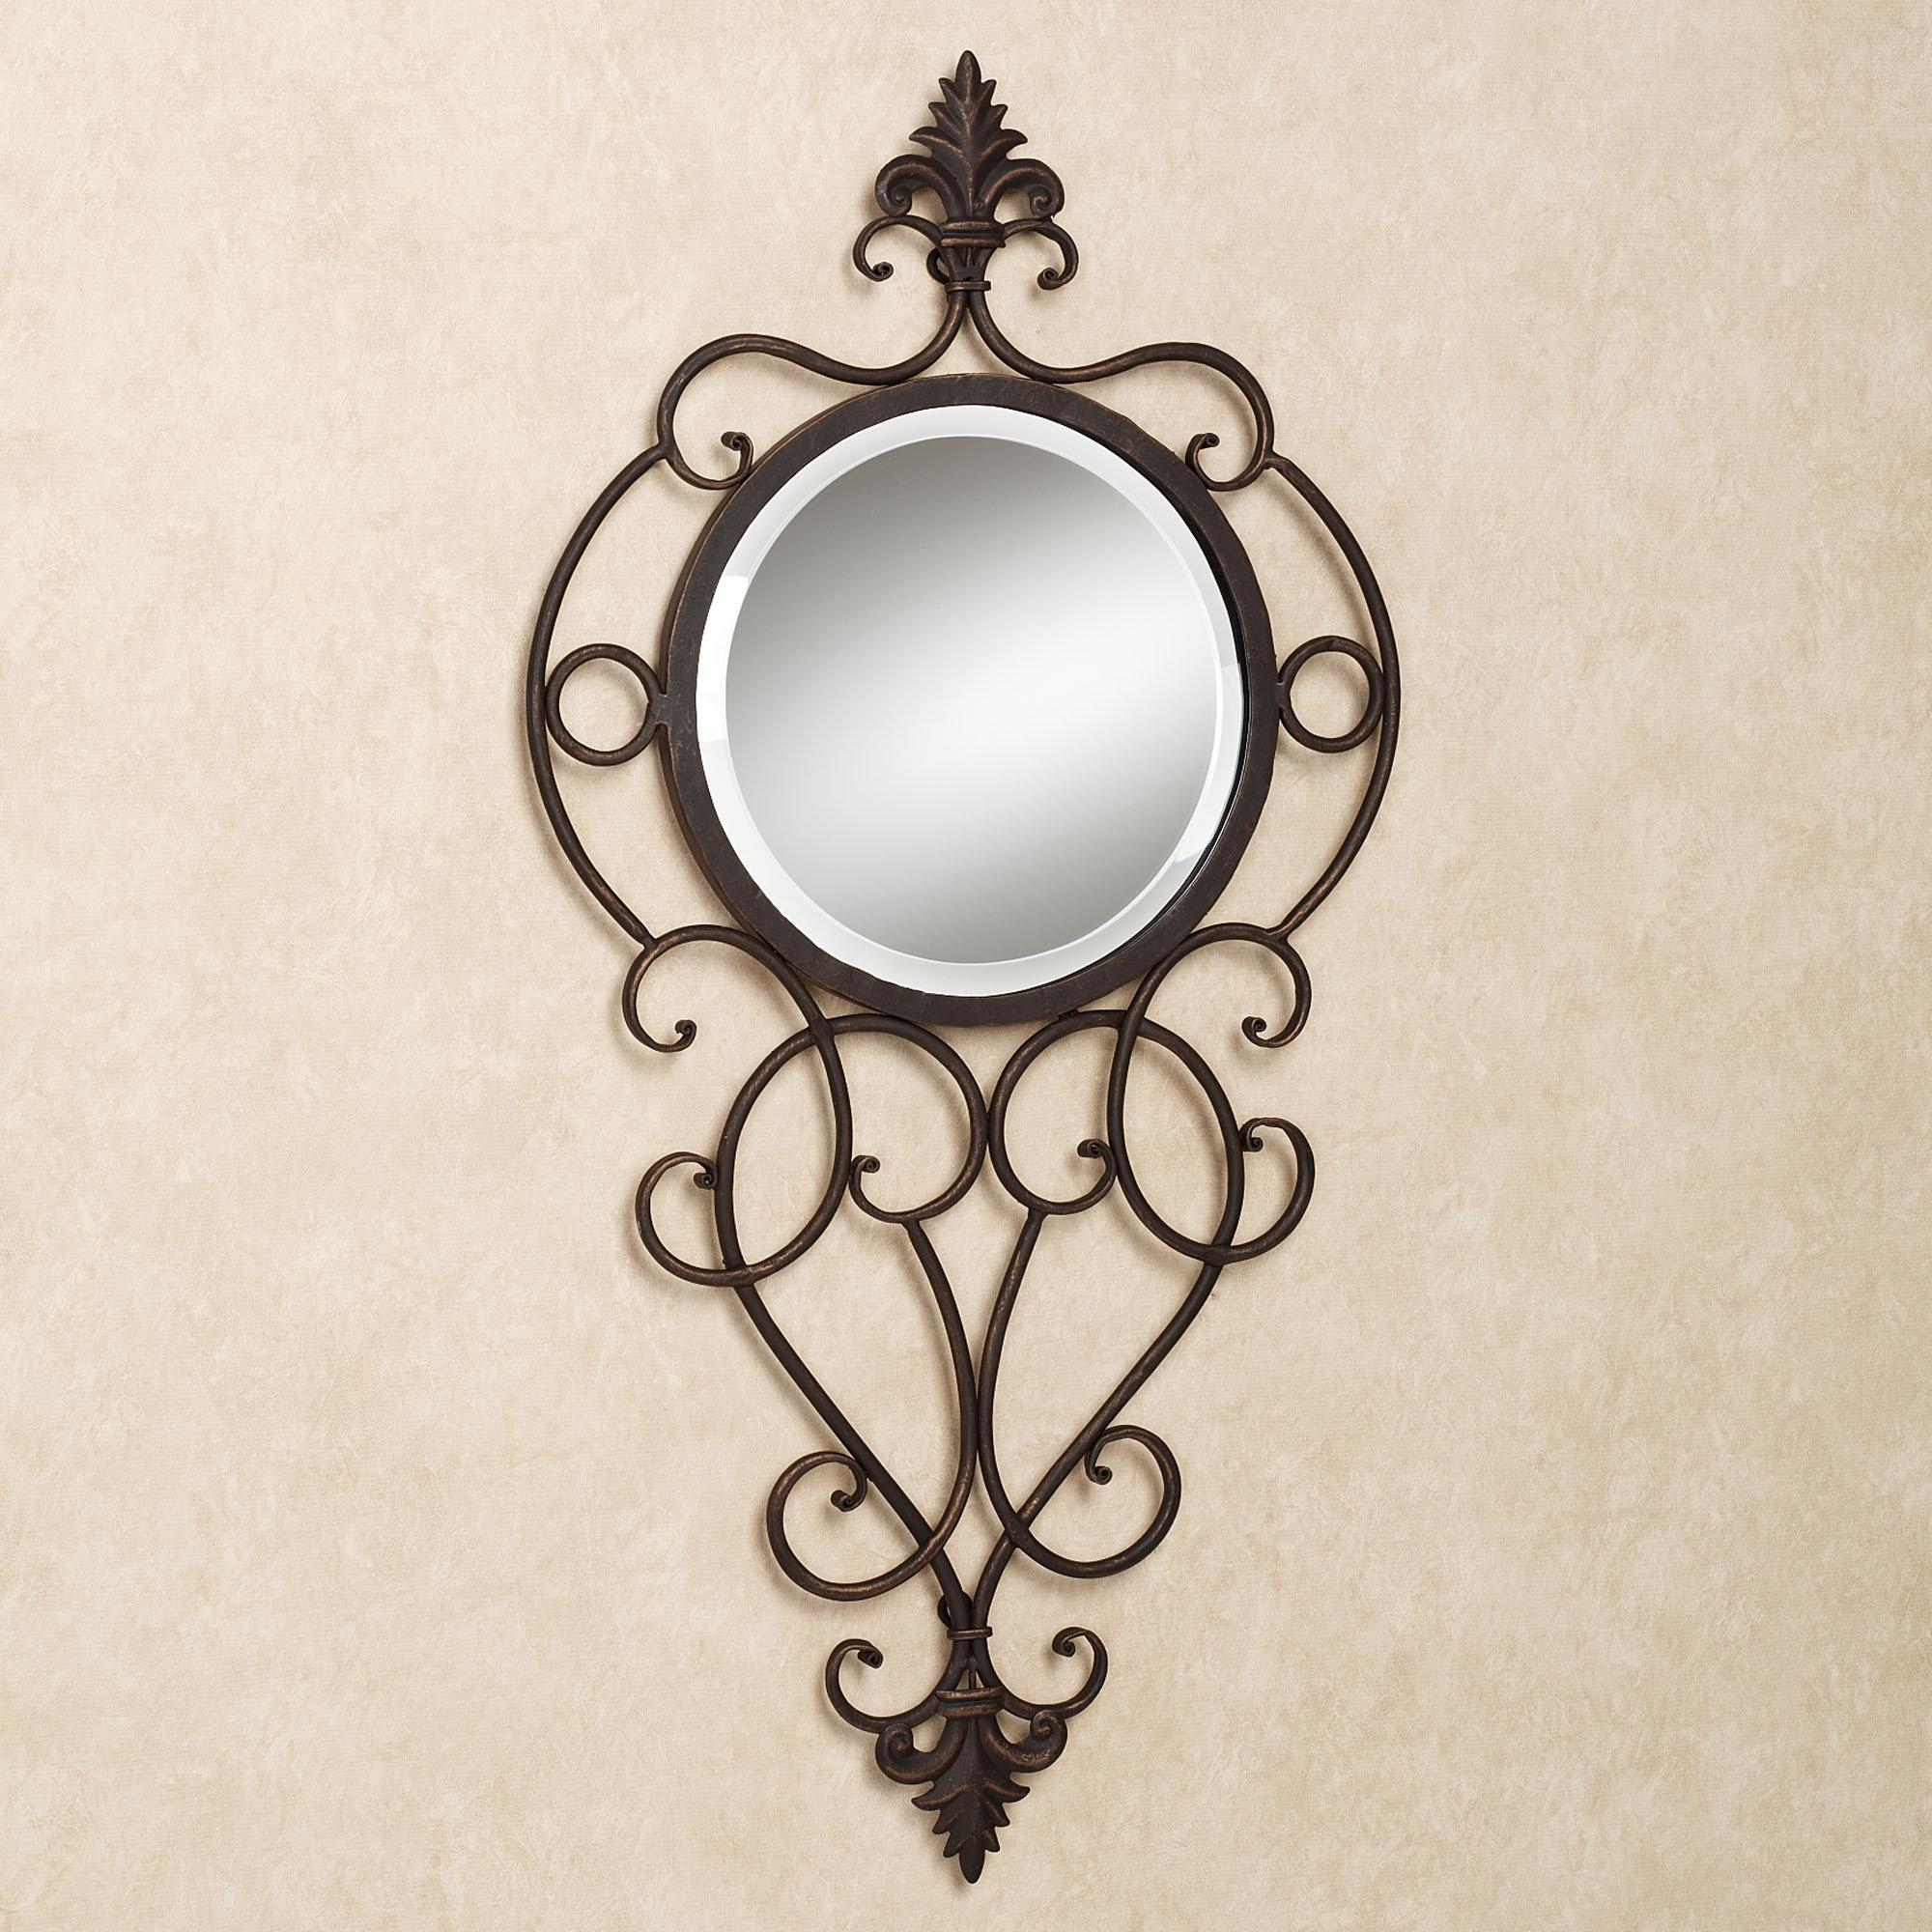 Black Wrought Iron Wall Decor — Home Decoration : Benefit Of Regarding Black Wrought Iron Mirrors (Image 6 of 20)